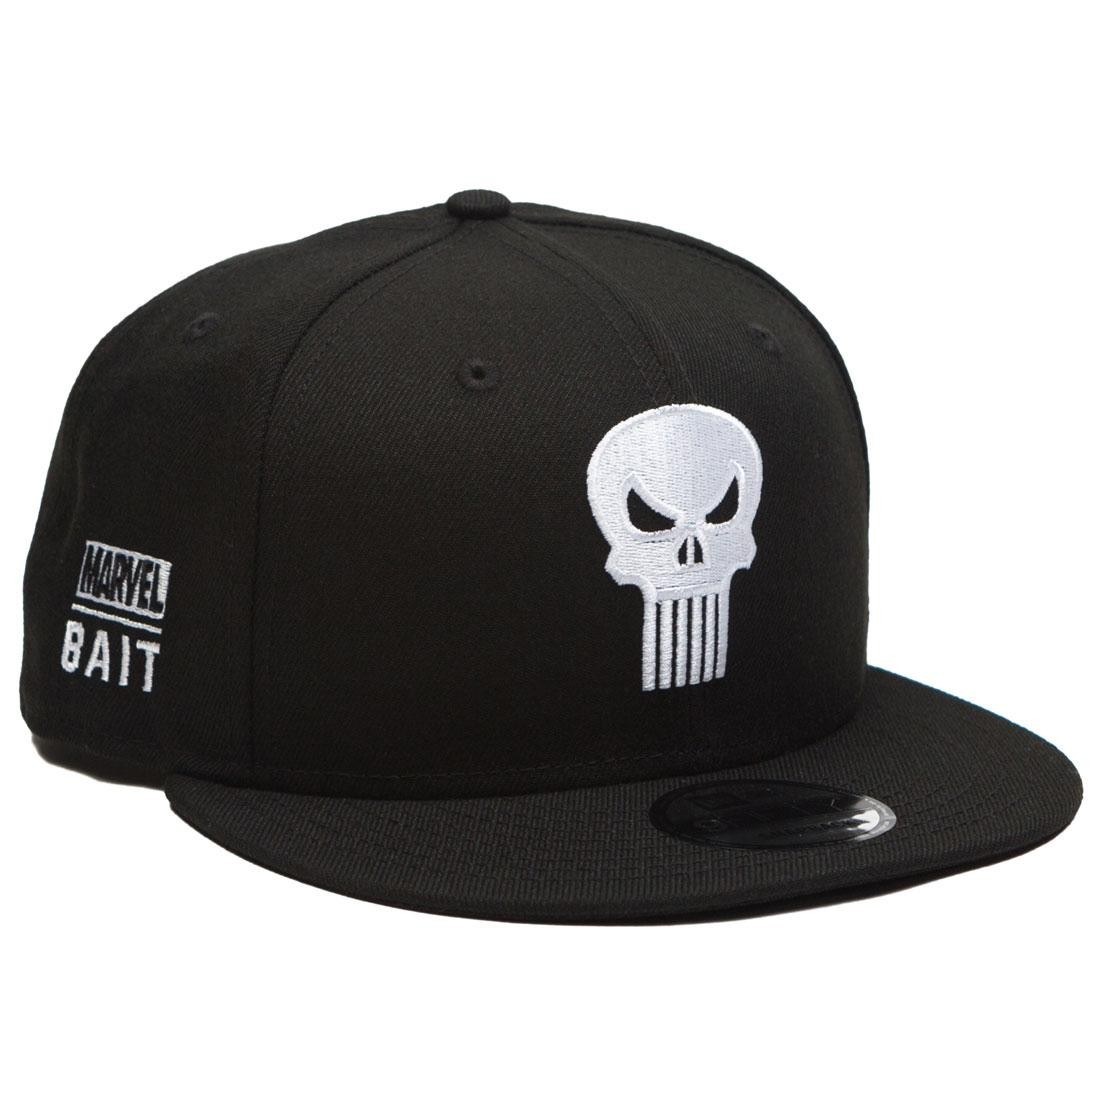 BAIT x Marvel x New Era 9Fifty Punisher Black Snapback Cap black 89695c566f1